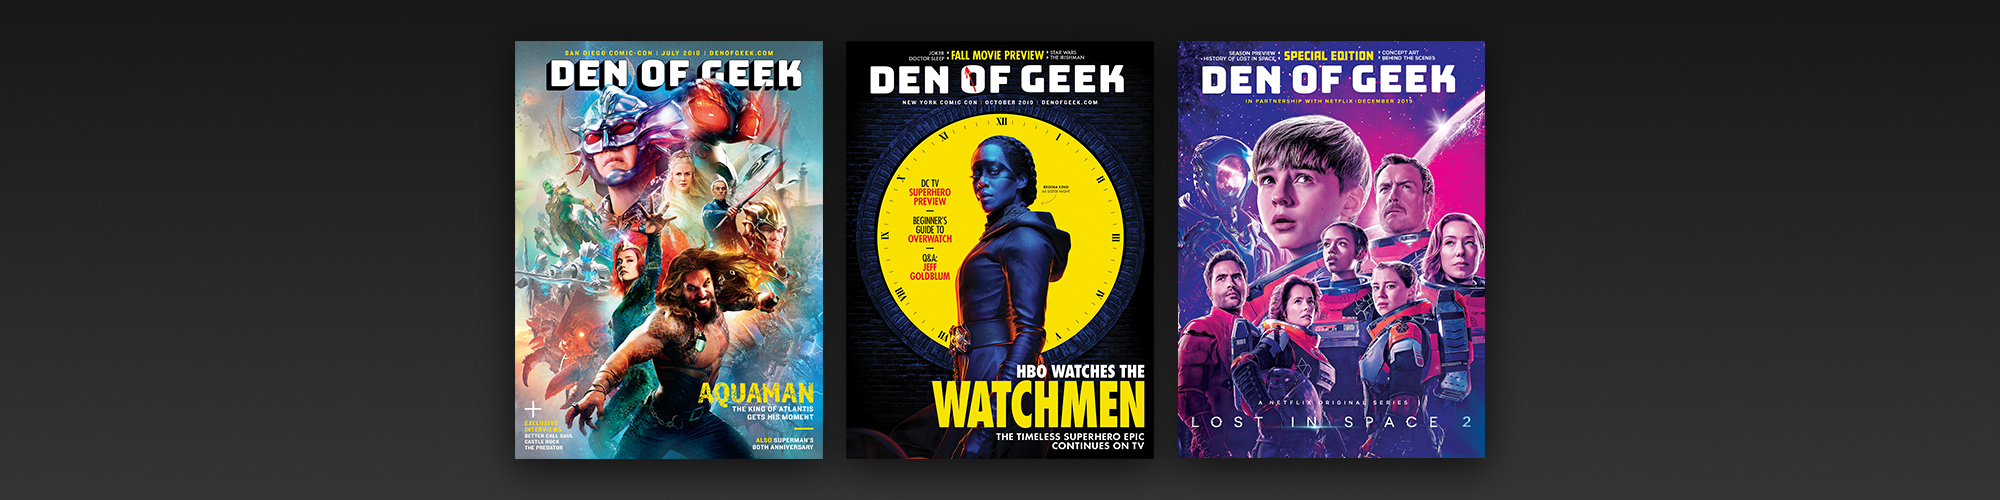 Den of Geek Magazine subscription banner